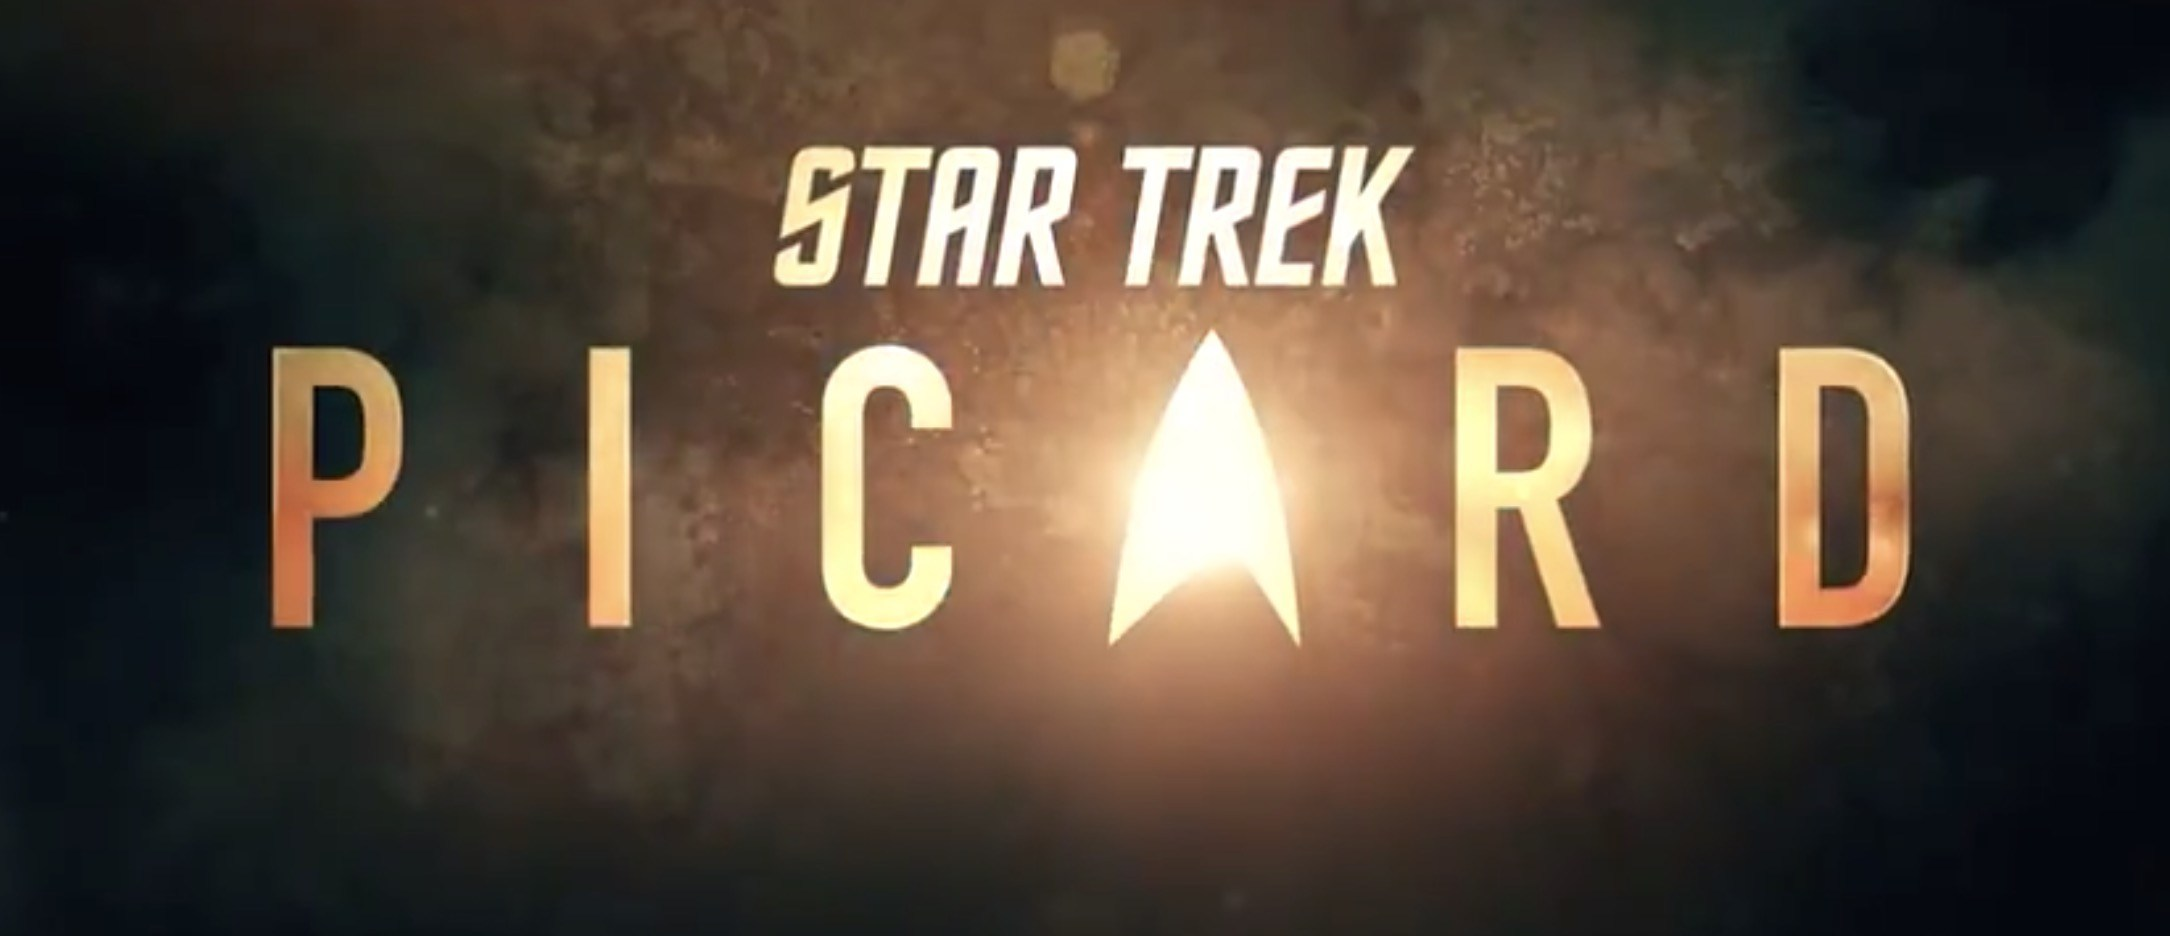 Official Title of Upcoming Star Trek Series Revealed: Captain Pic